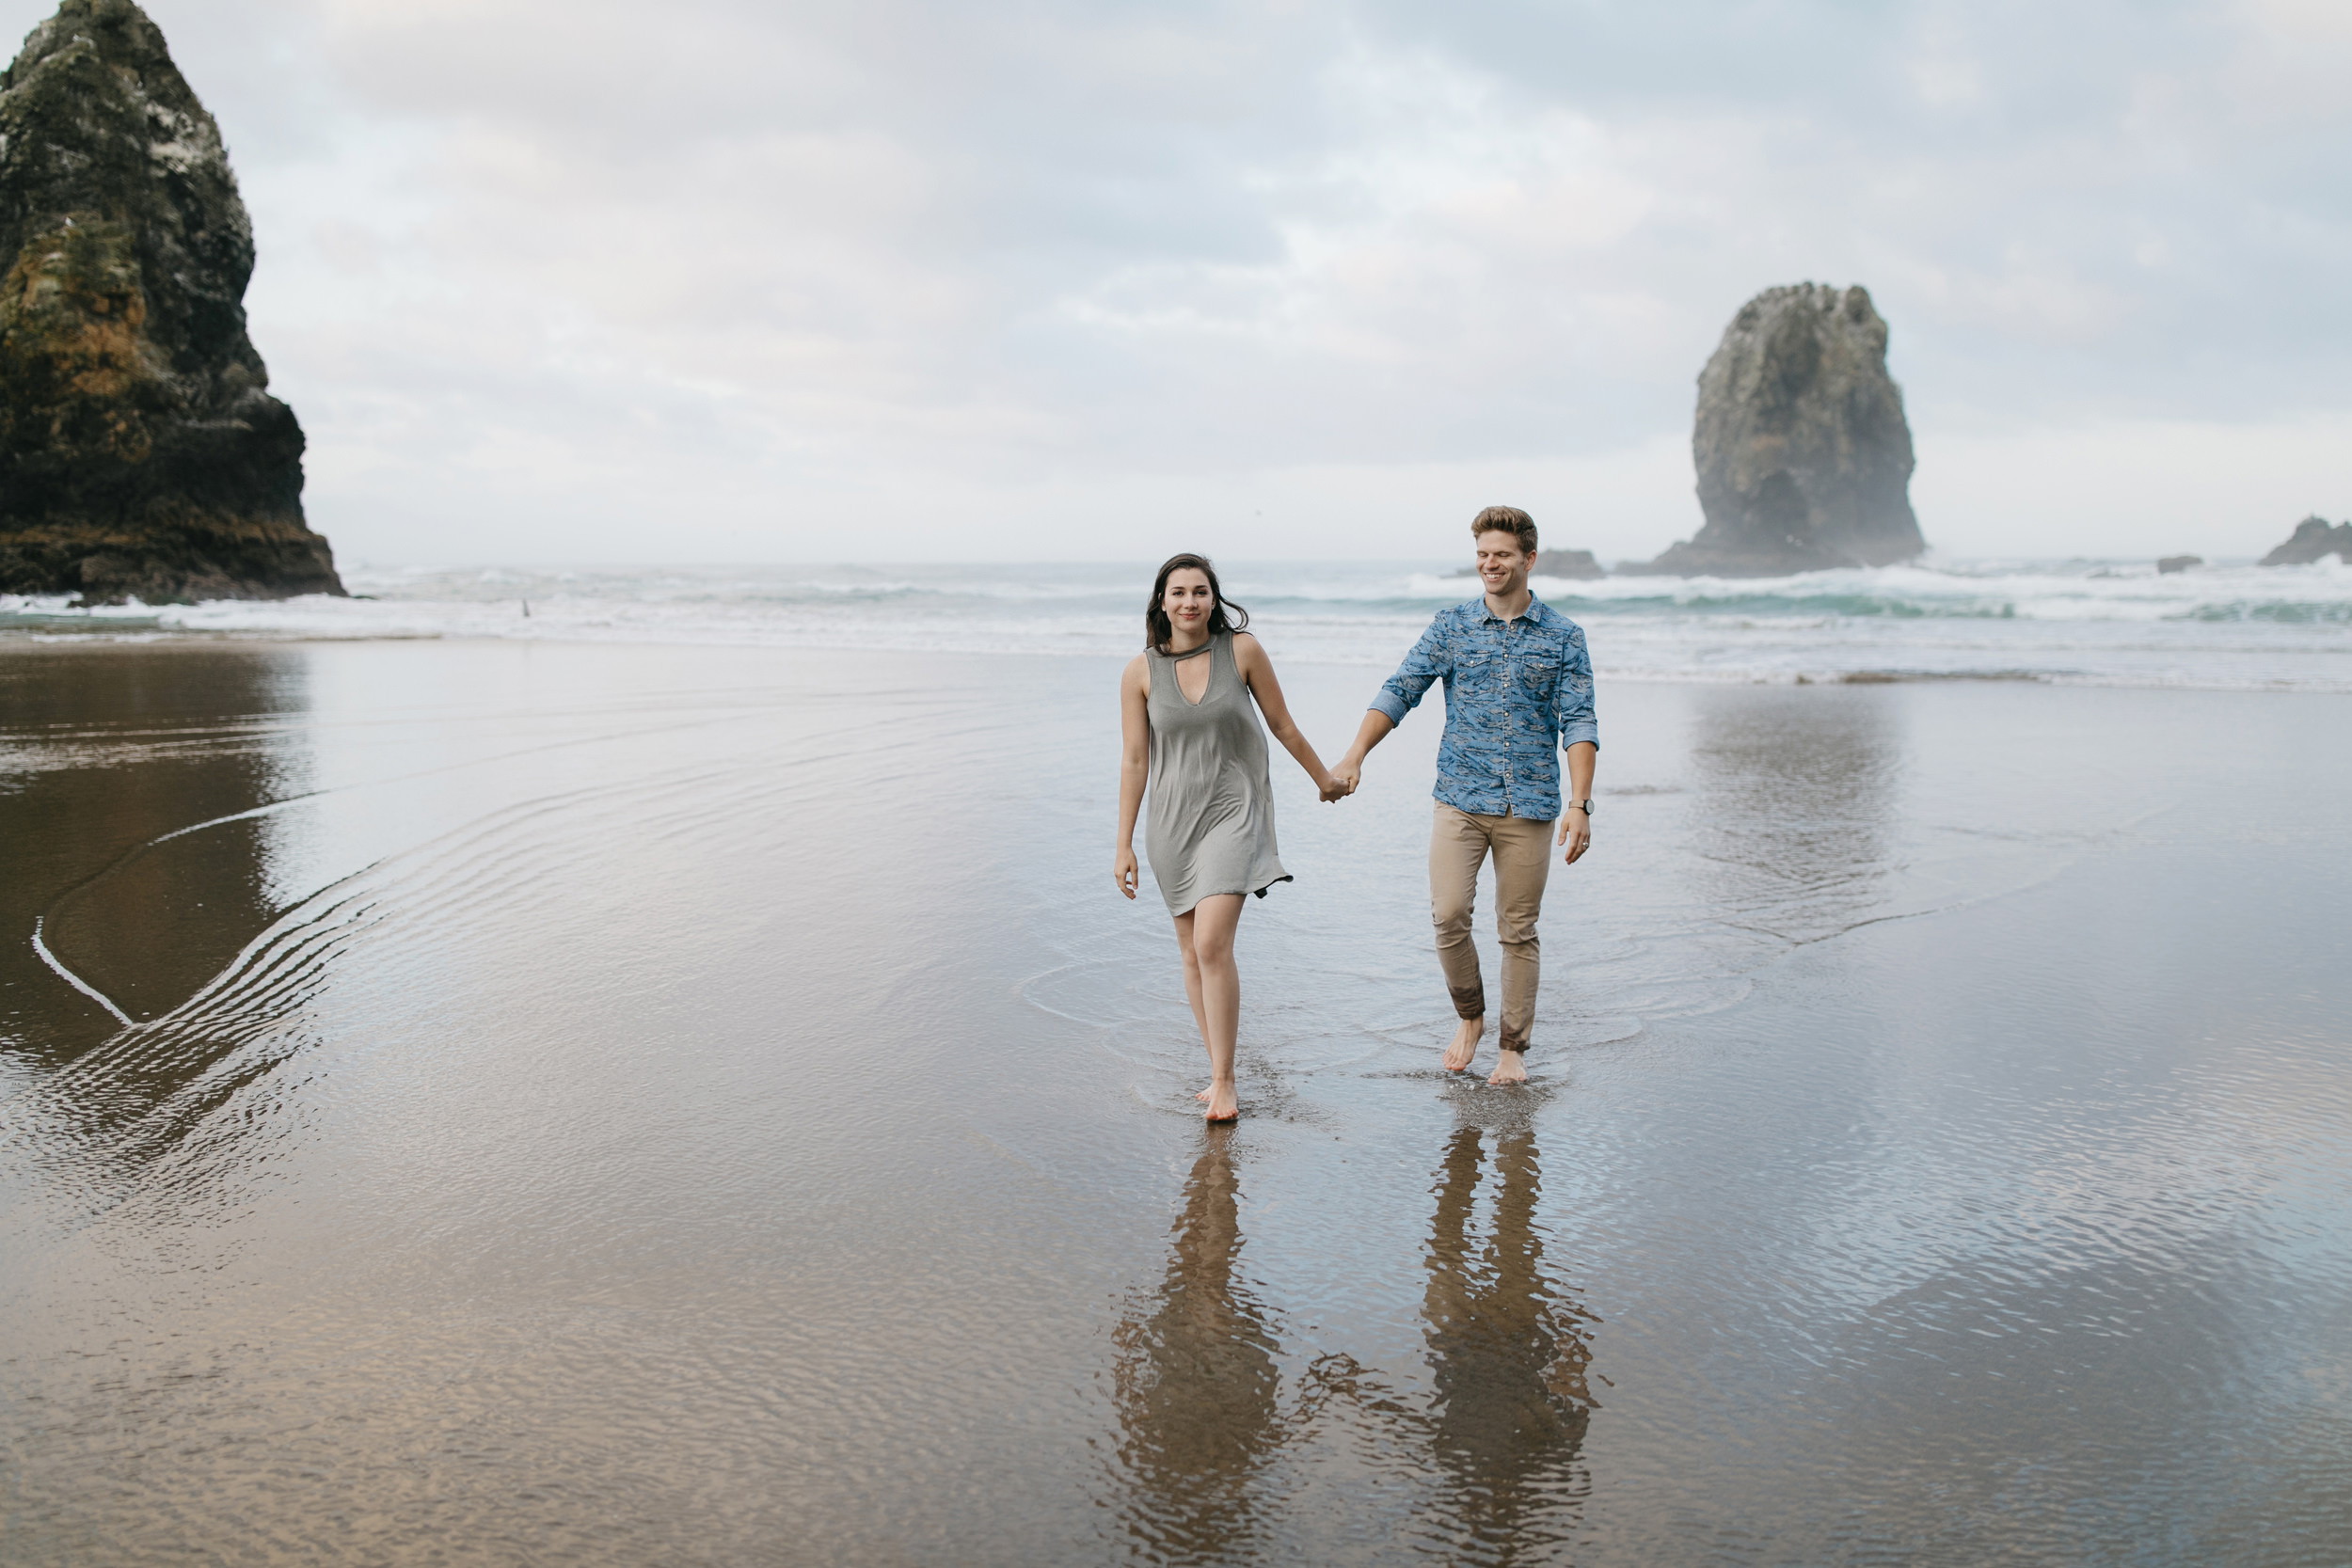 Cannon-Beach-Adventure-Engagement-Photography-Oregon-Destination-Elopement-Photographer68.JPG